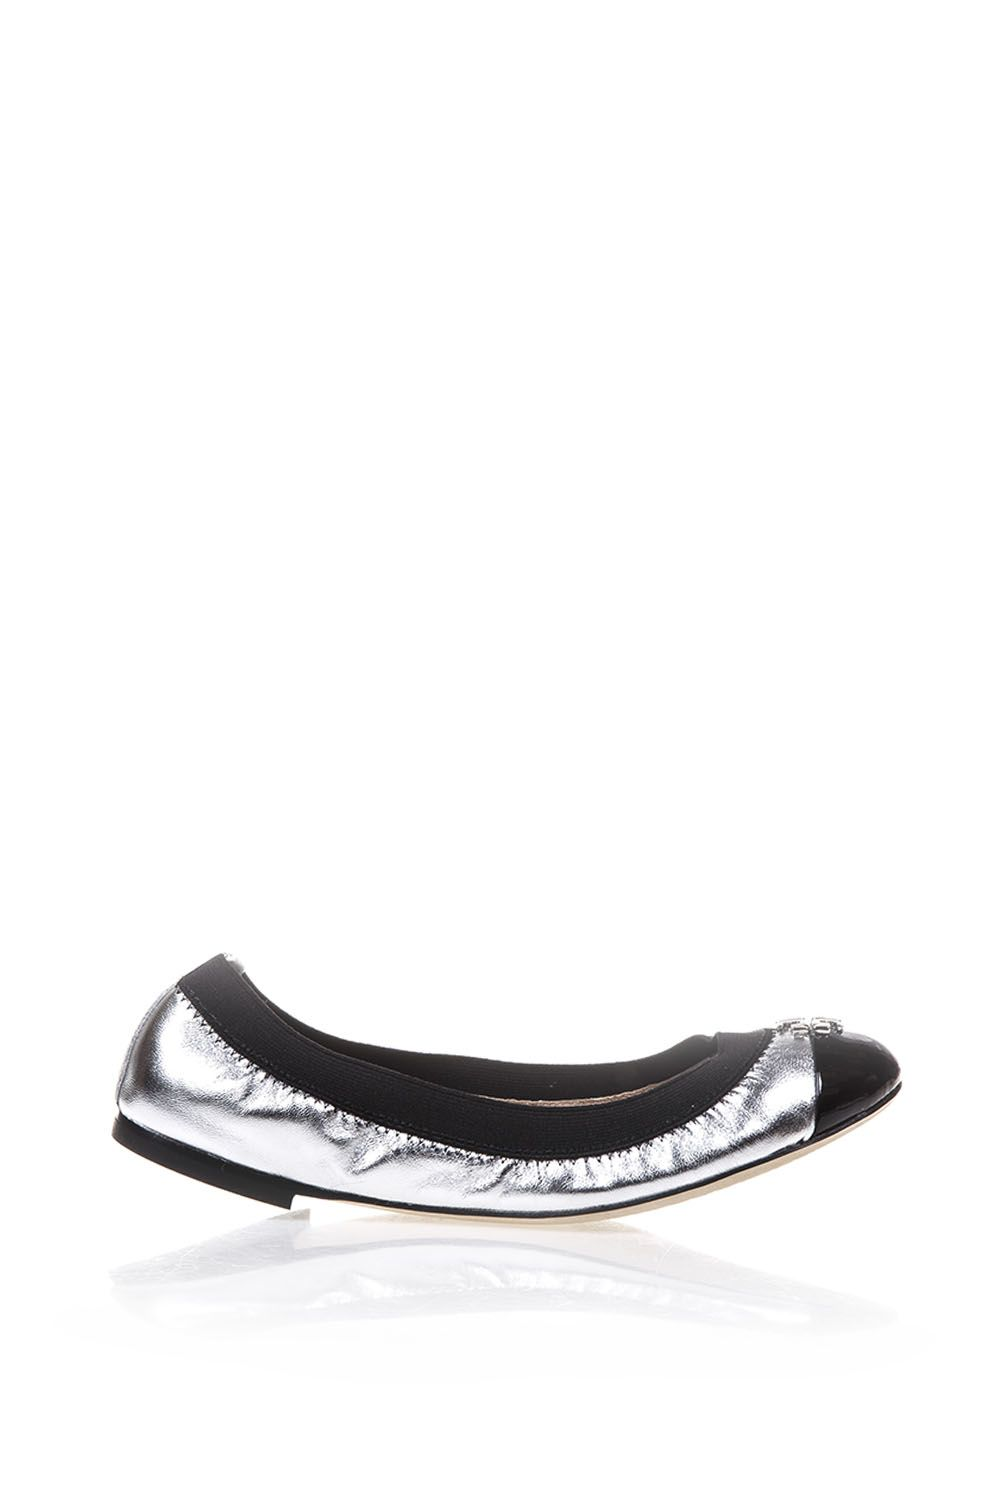 Tory Burch Jolie Metallic Leather Ballerinas